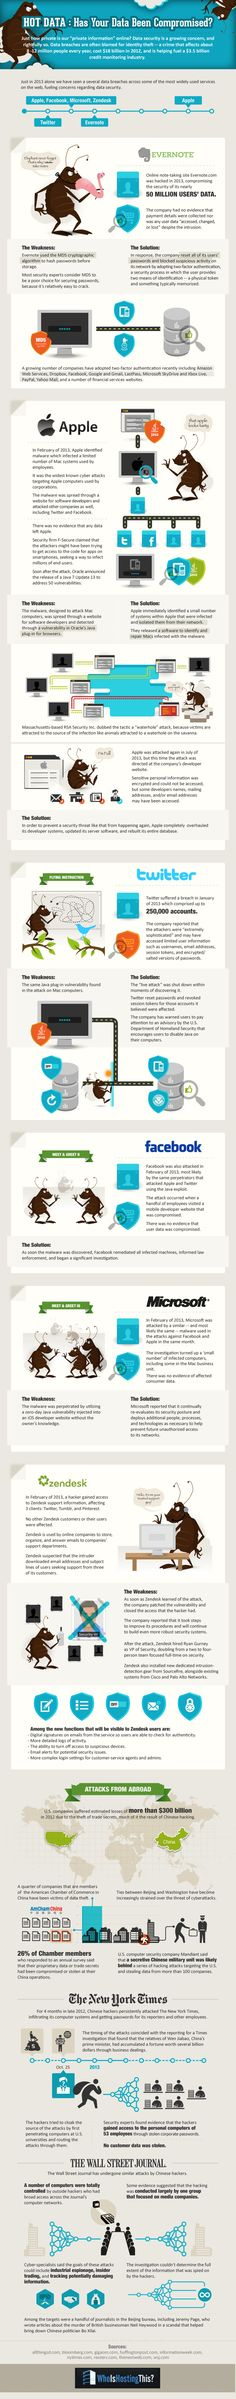 Apple, Facebook, Zendesk, Twitter - Was Your Data Compromised In 2013? #Infographic